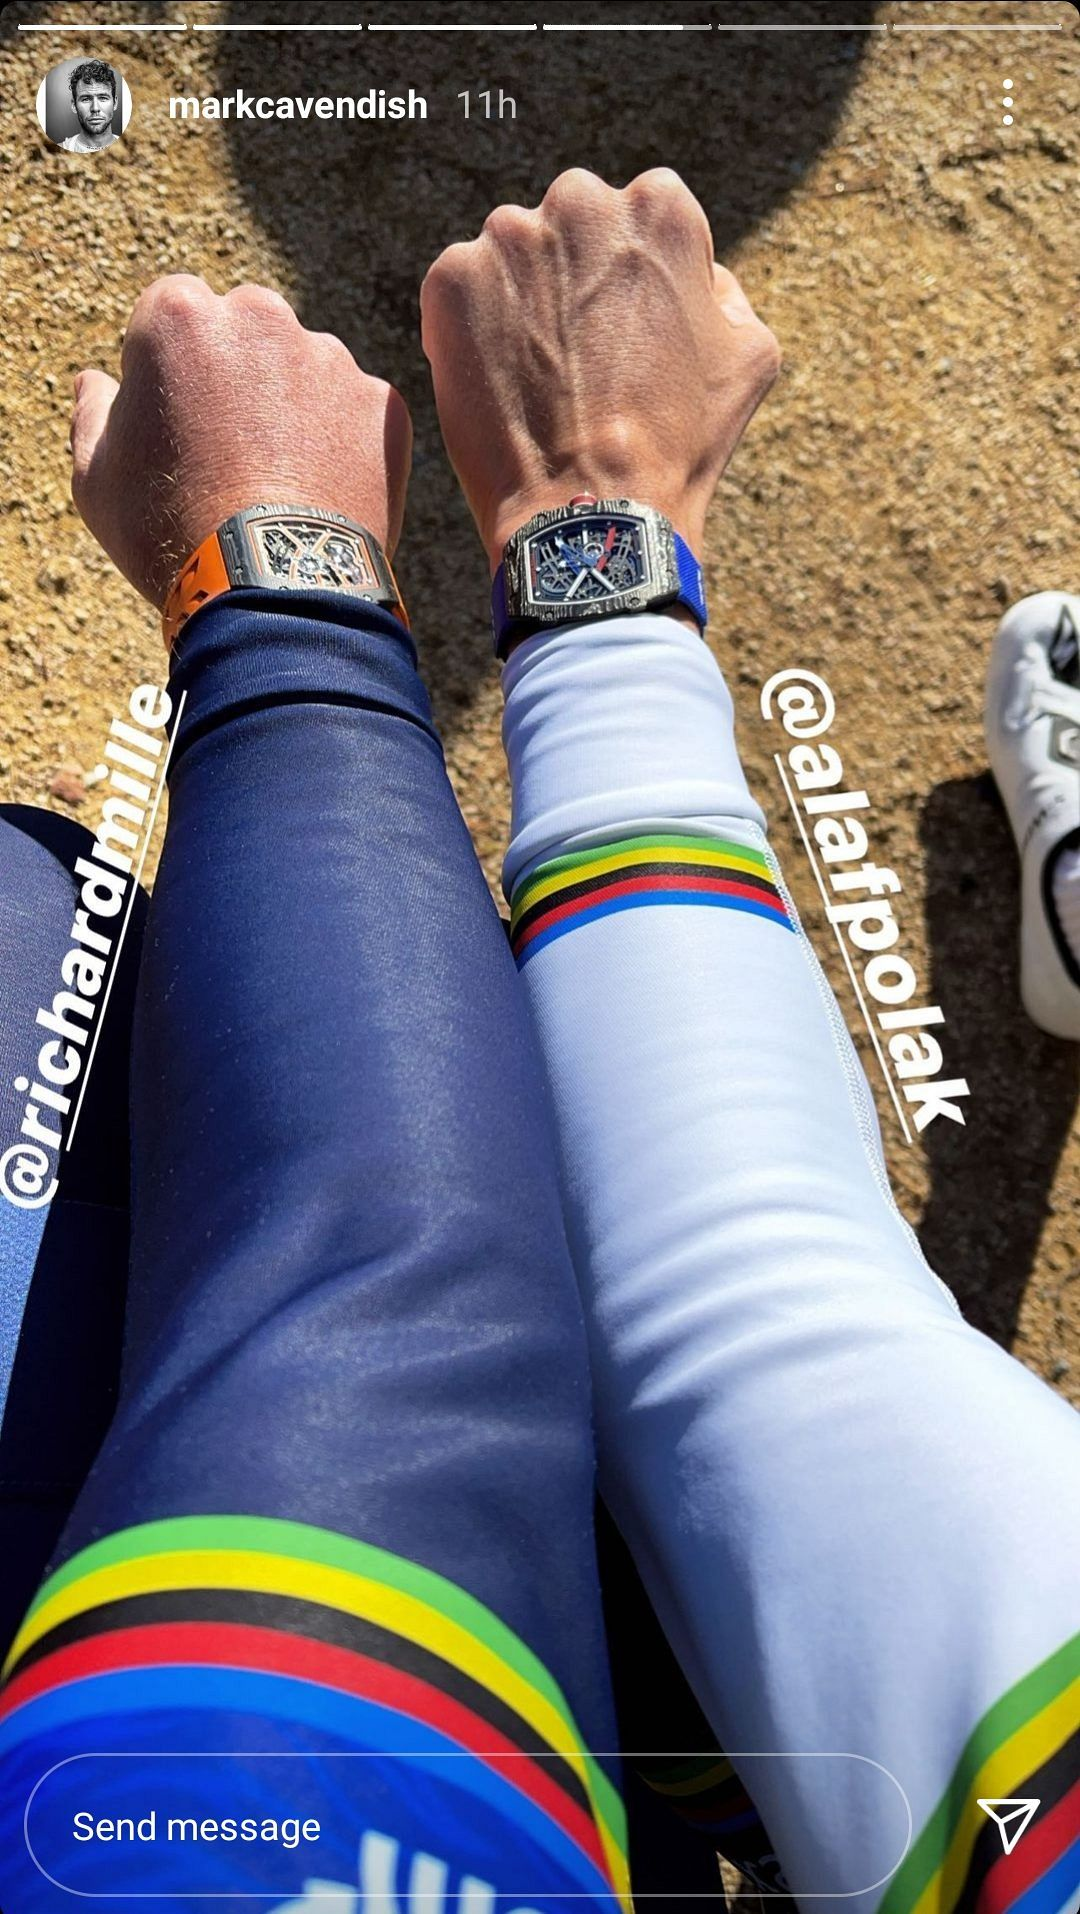 EDITOR'S PICK: Mark Cavendish is gunning for Tour de France glory with a Richard Mille on his wrist